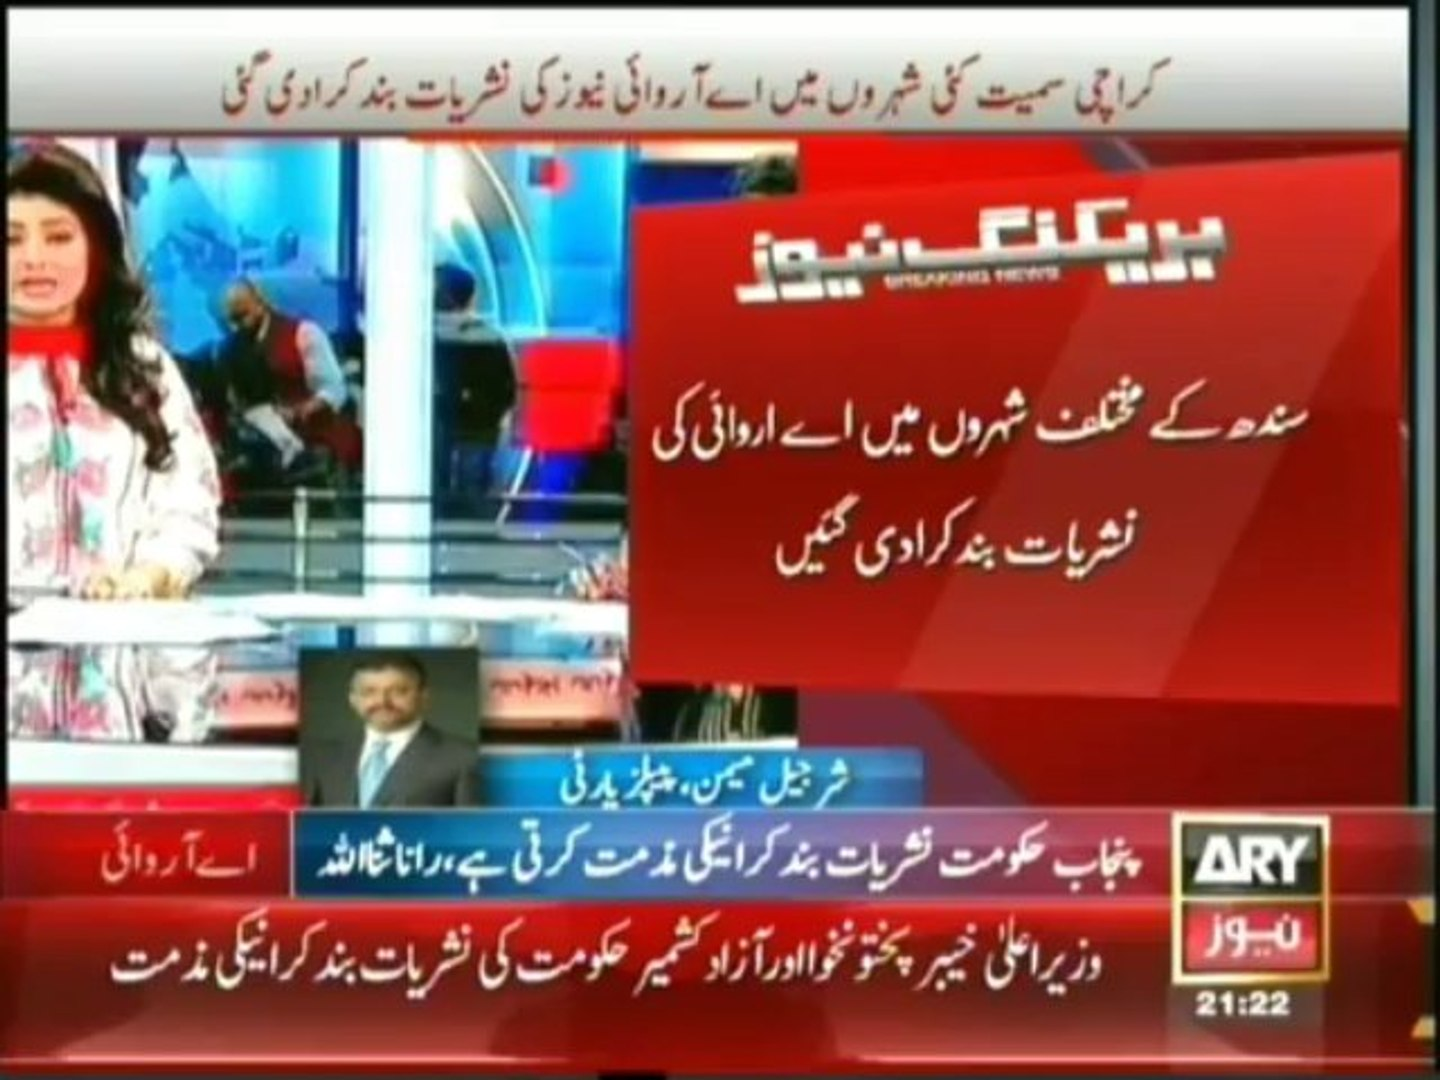 ARY News forced turned off, reaction from media and political forces